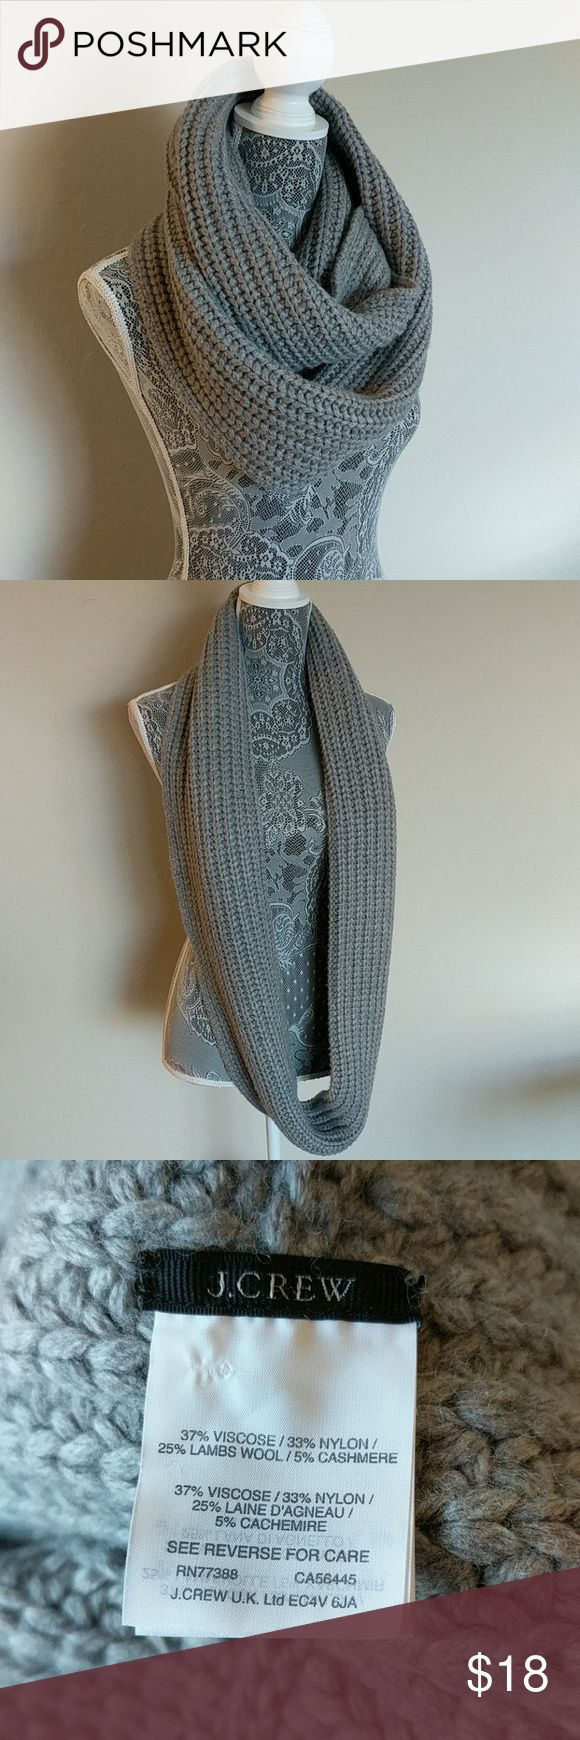 J. Crew Grey Chunky Infinity Scarf Only worn a few times and in great condition. J. Crew Accessories Scarves & Wraps